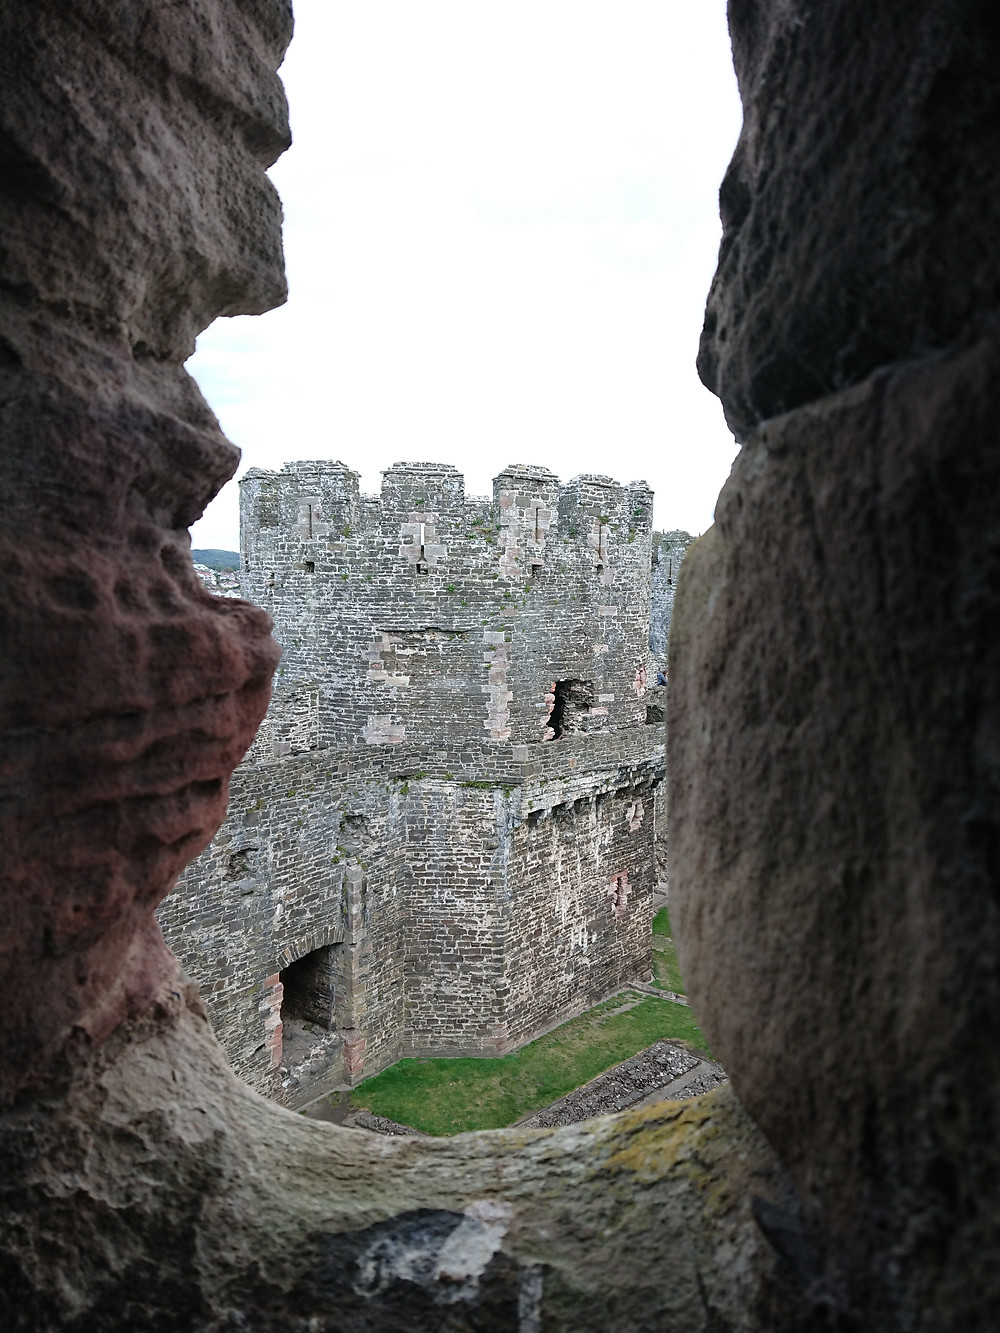 general view of the inside of Conwy castle, Conwy, North Wales